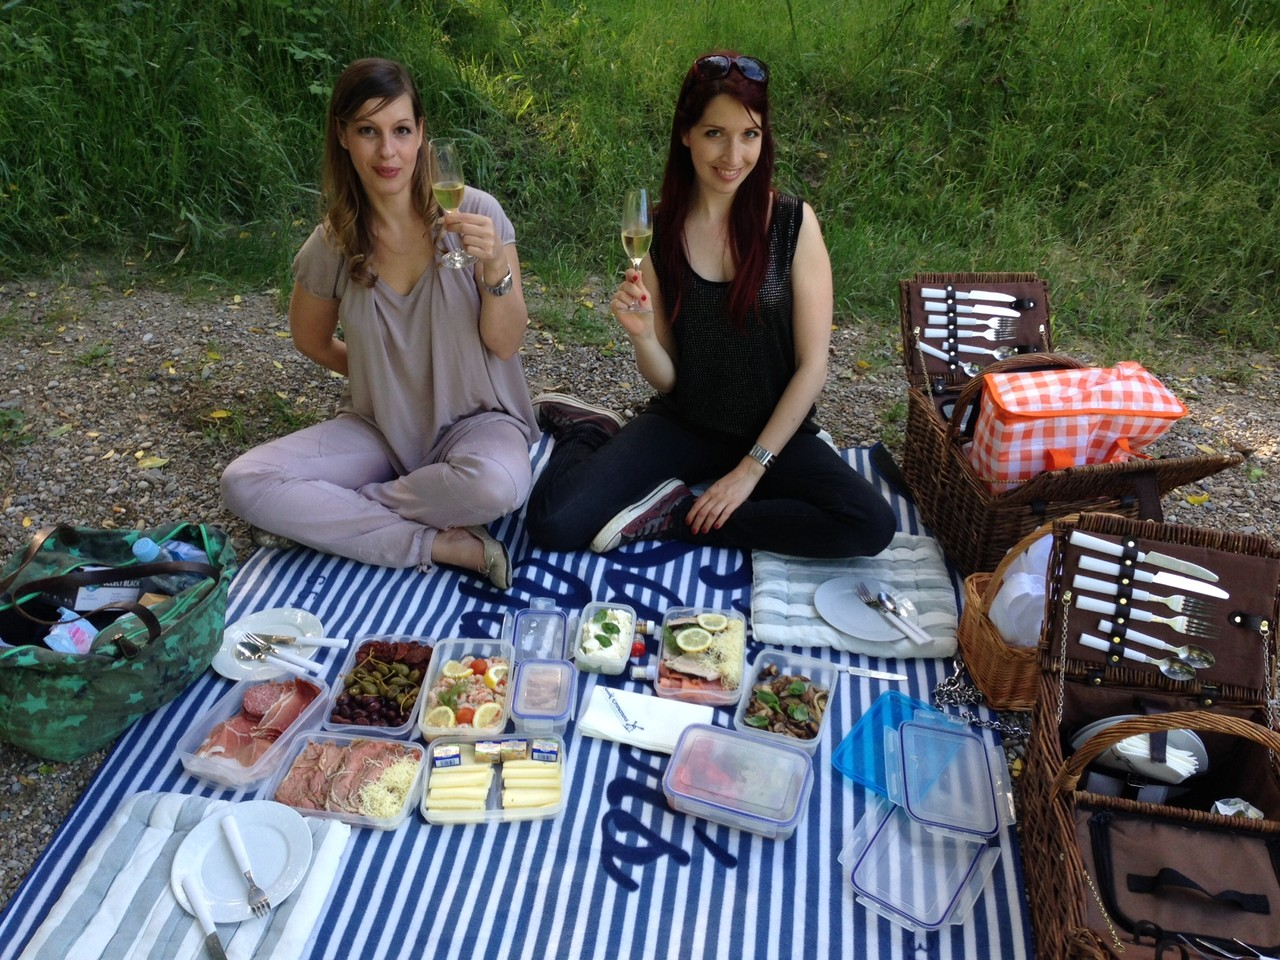 Das Perfekte Picknick Sessionbericht: Picknick Und Petplay - My-fashion-for-legs